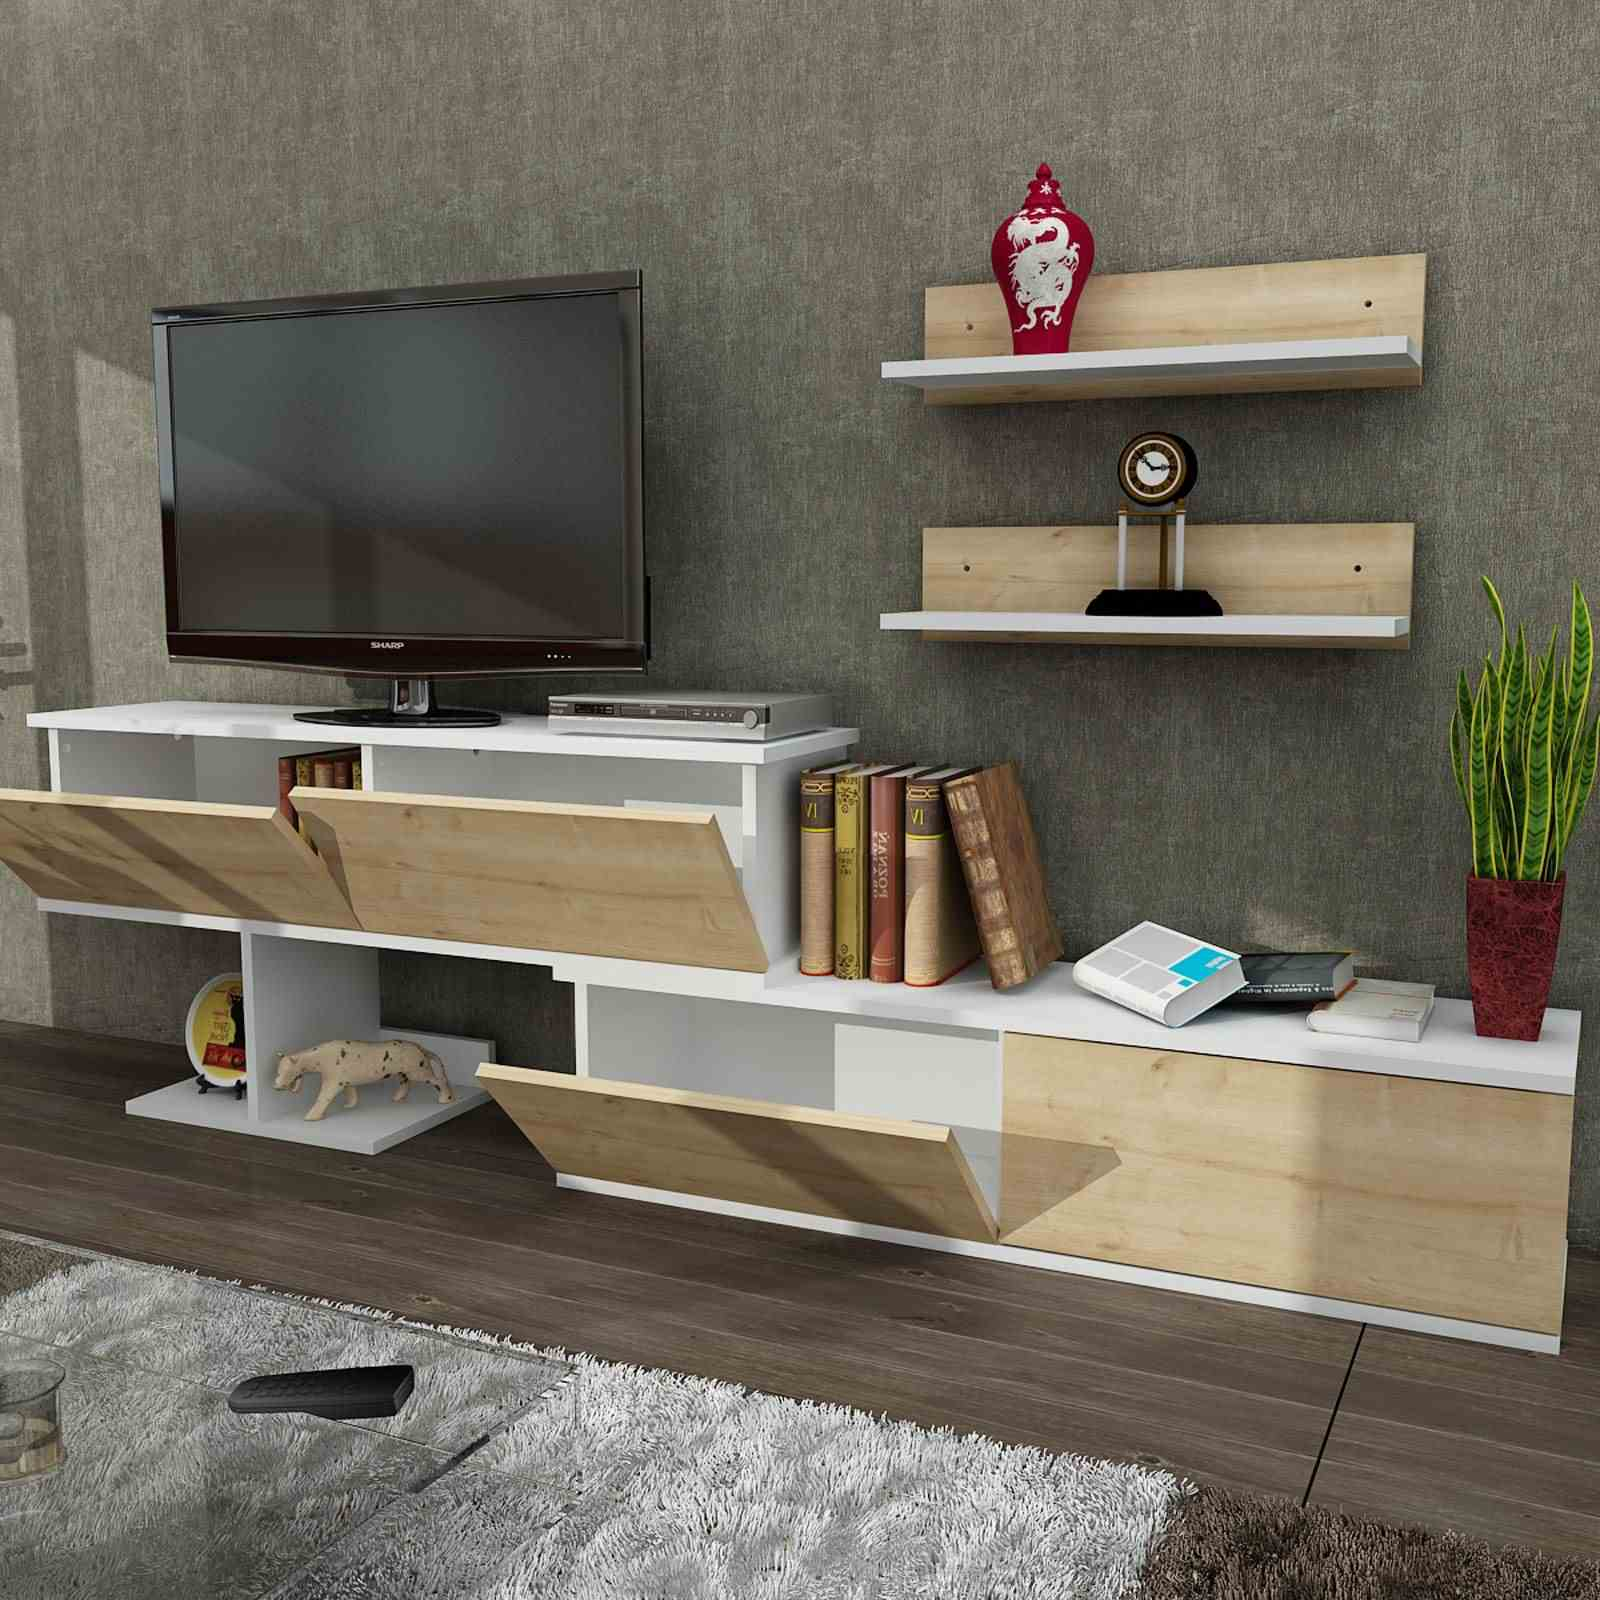 Muebles De Televisor Furny Home Mueble Para Televisor Natural Brandalley